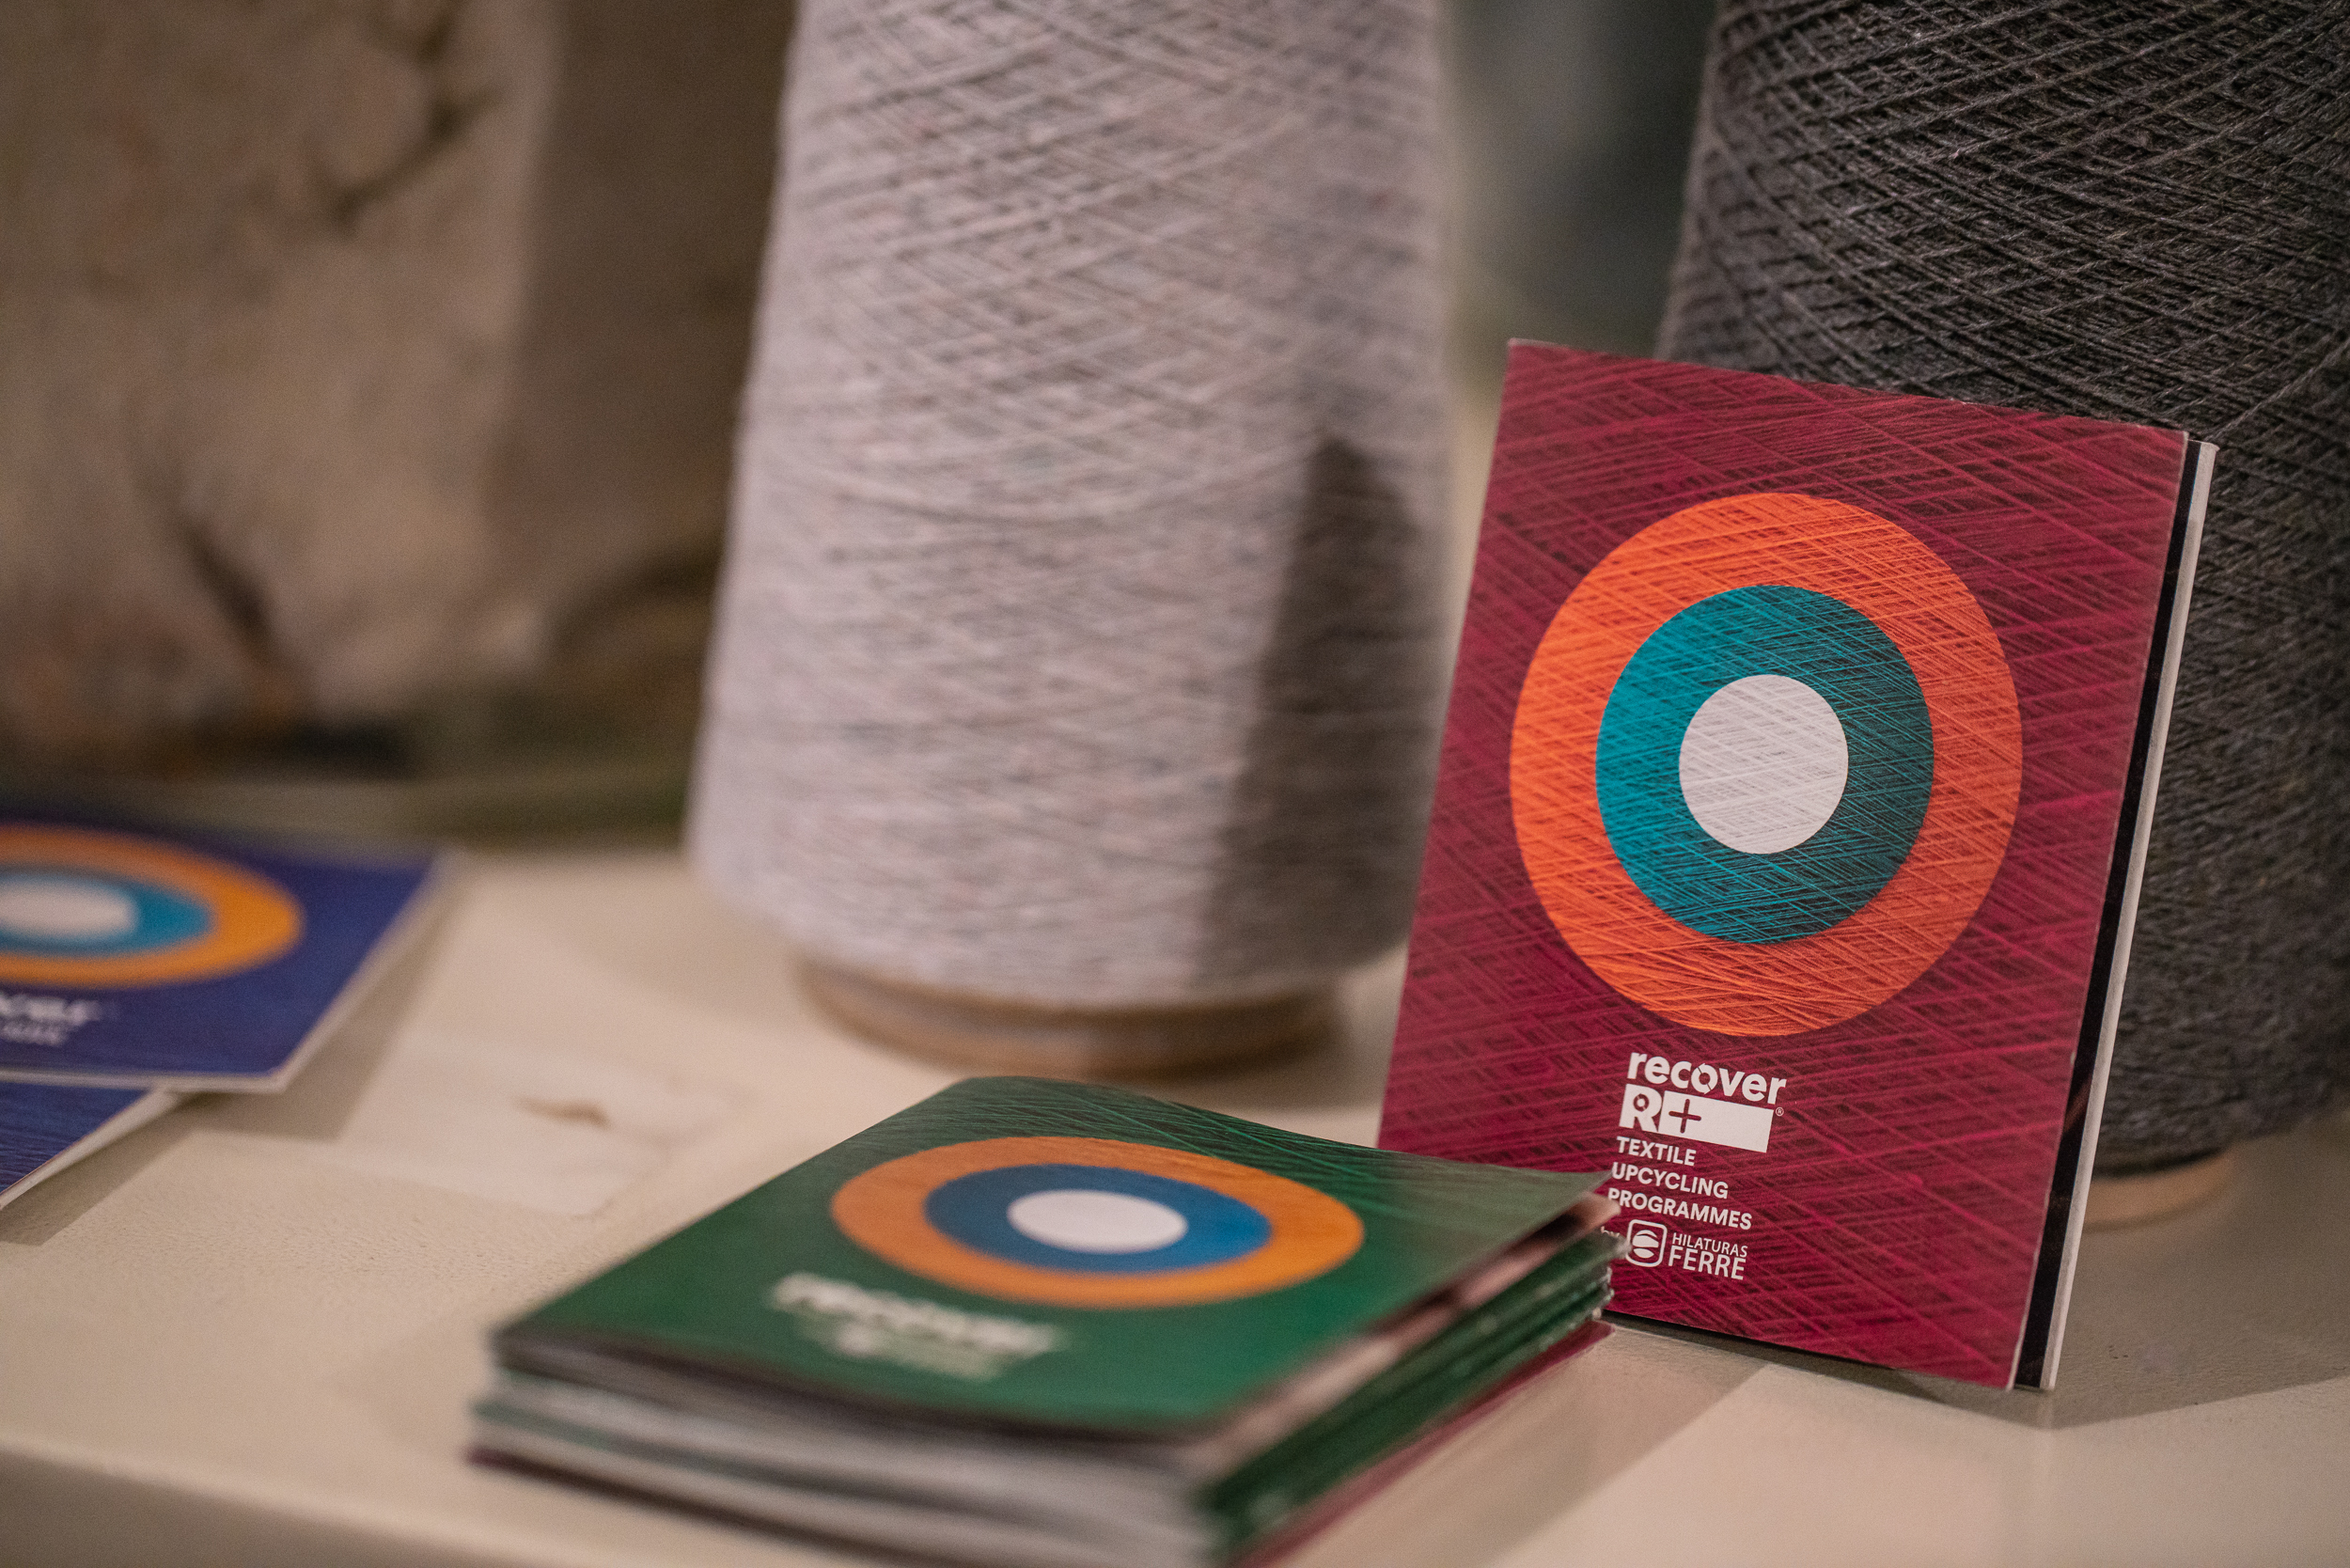 MaterialRevolution_KrisKish-31.jpg